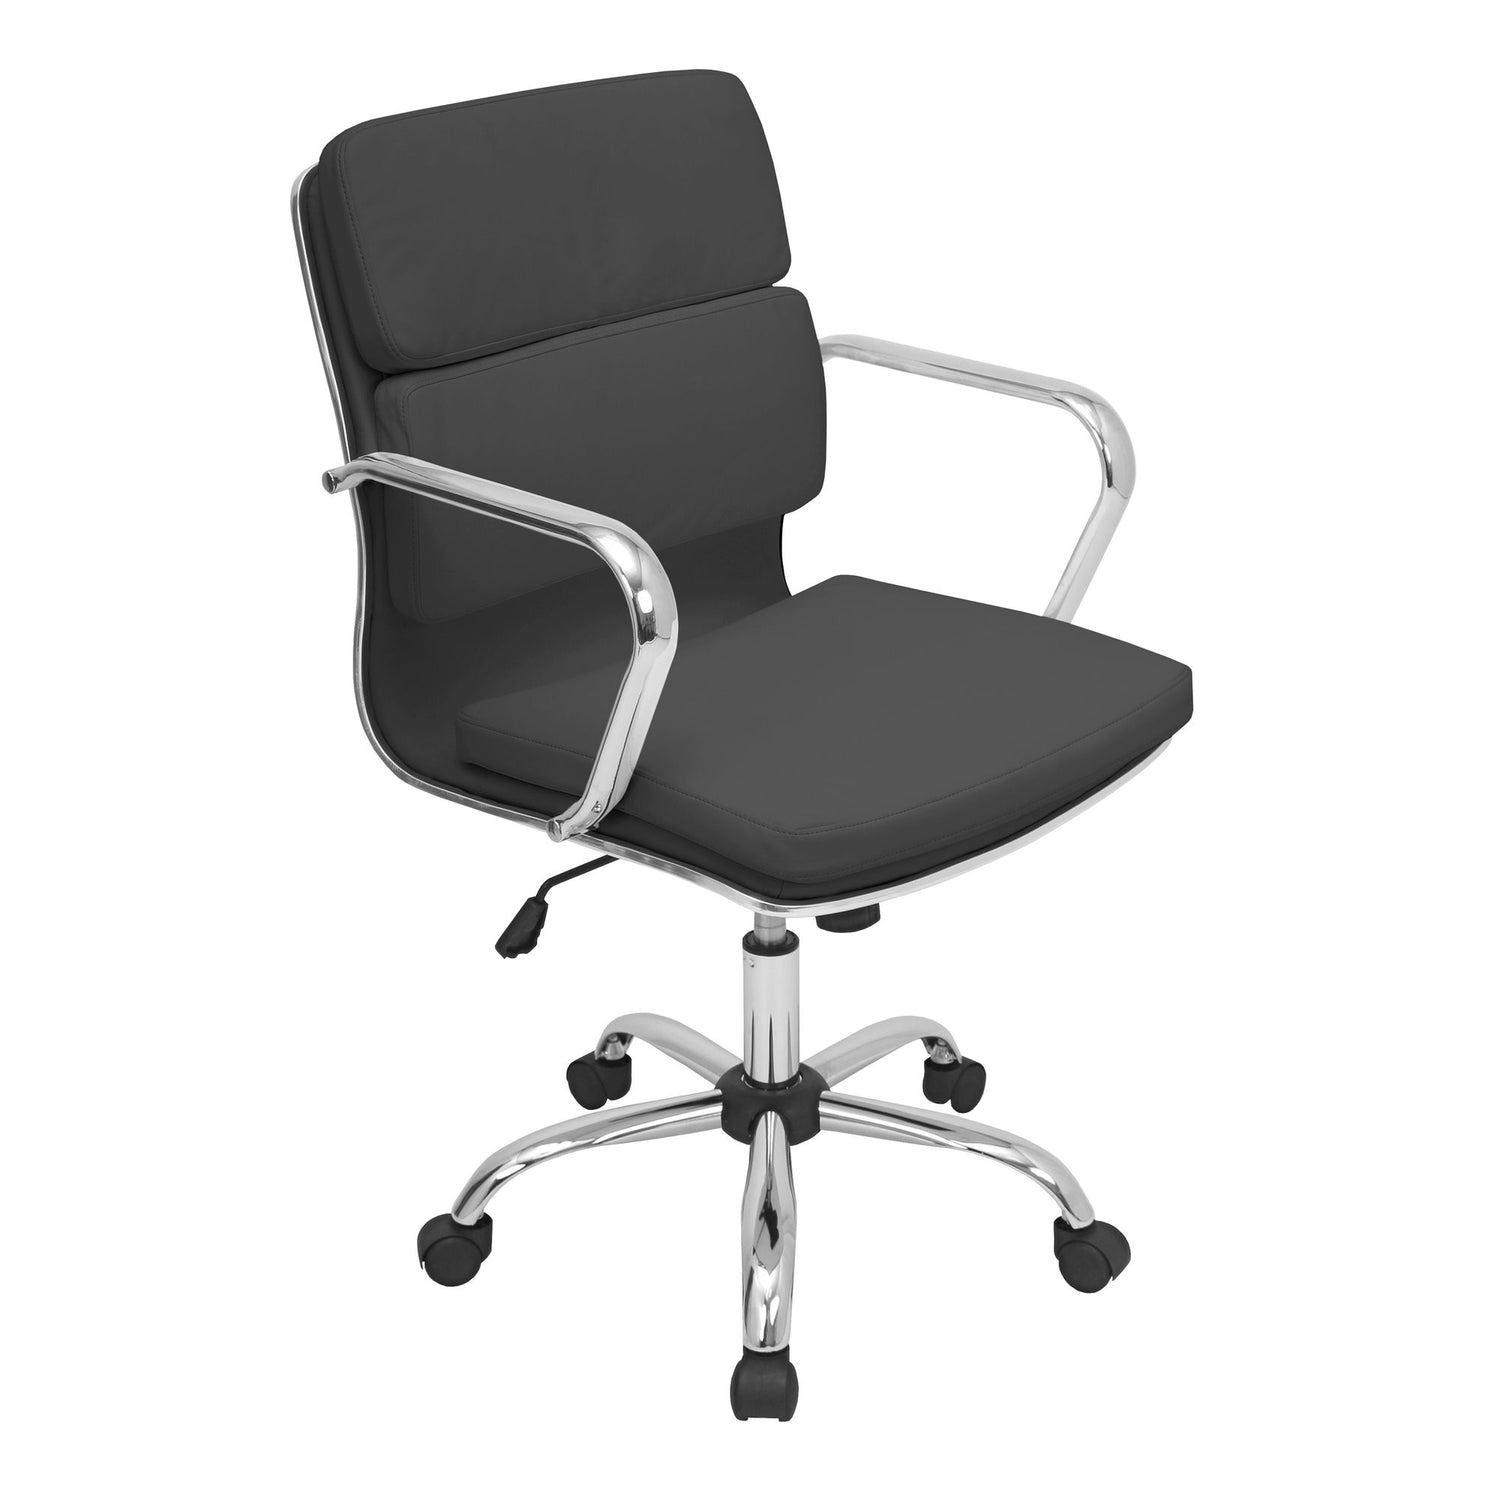 Rolly II Desk Chair – Feather